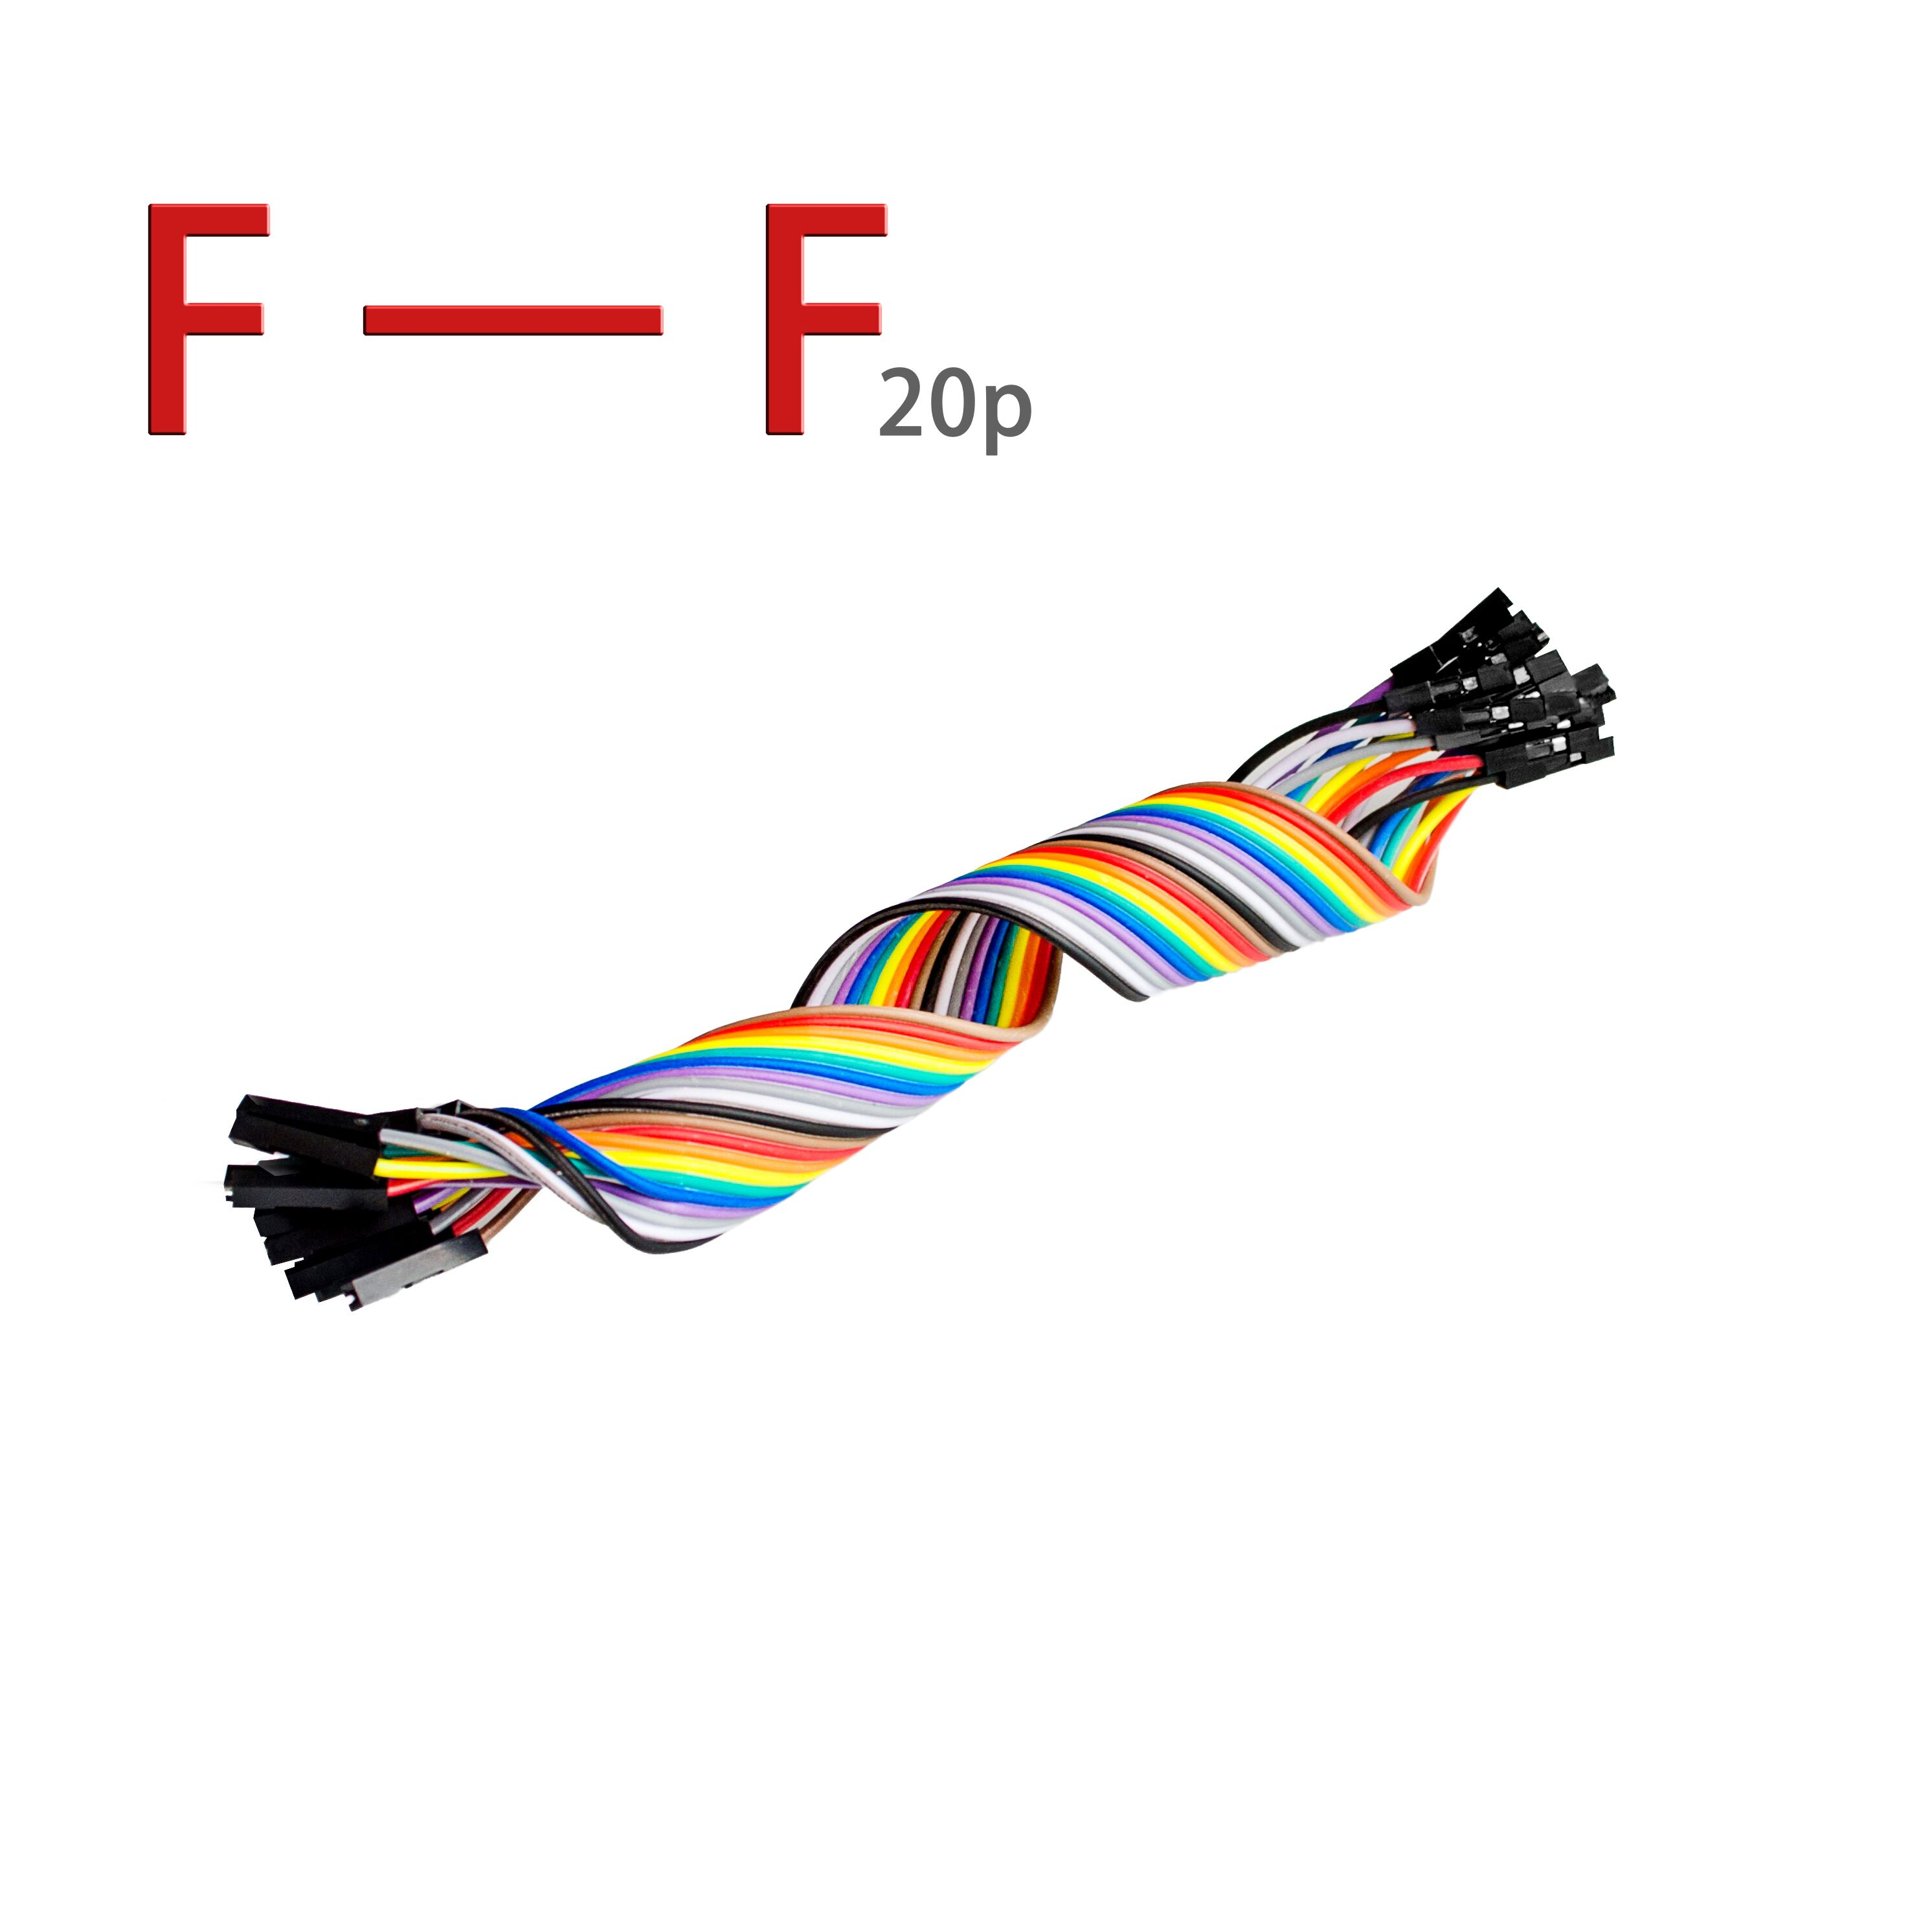 20pcs 20cm 2.54mm 1p-1p Pin Female to Female Color Breadboard Cable Jump Wire Jumper For Arduino(China (Mainland))